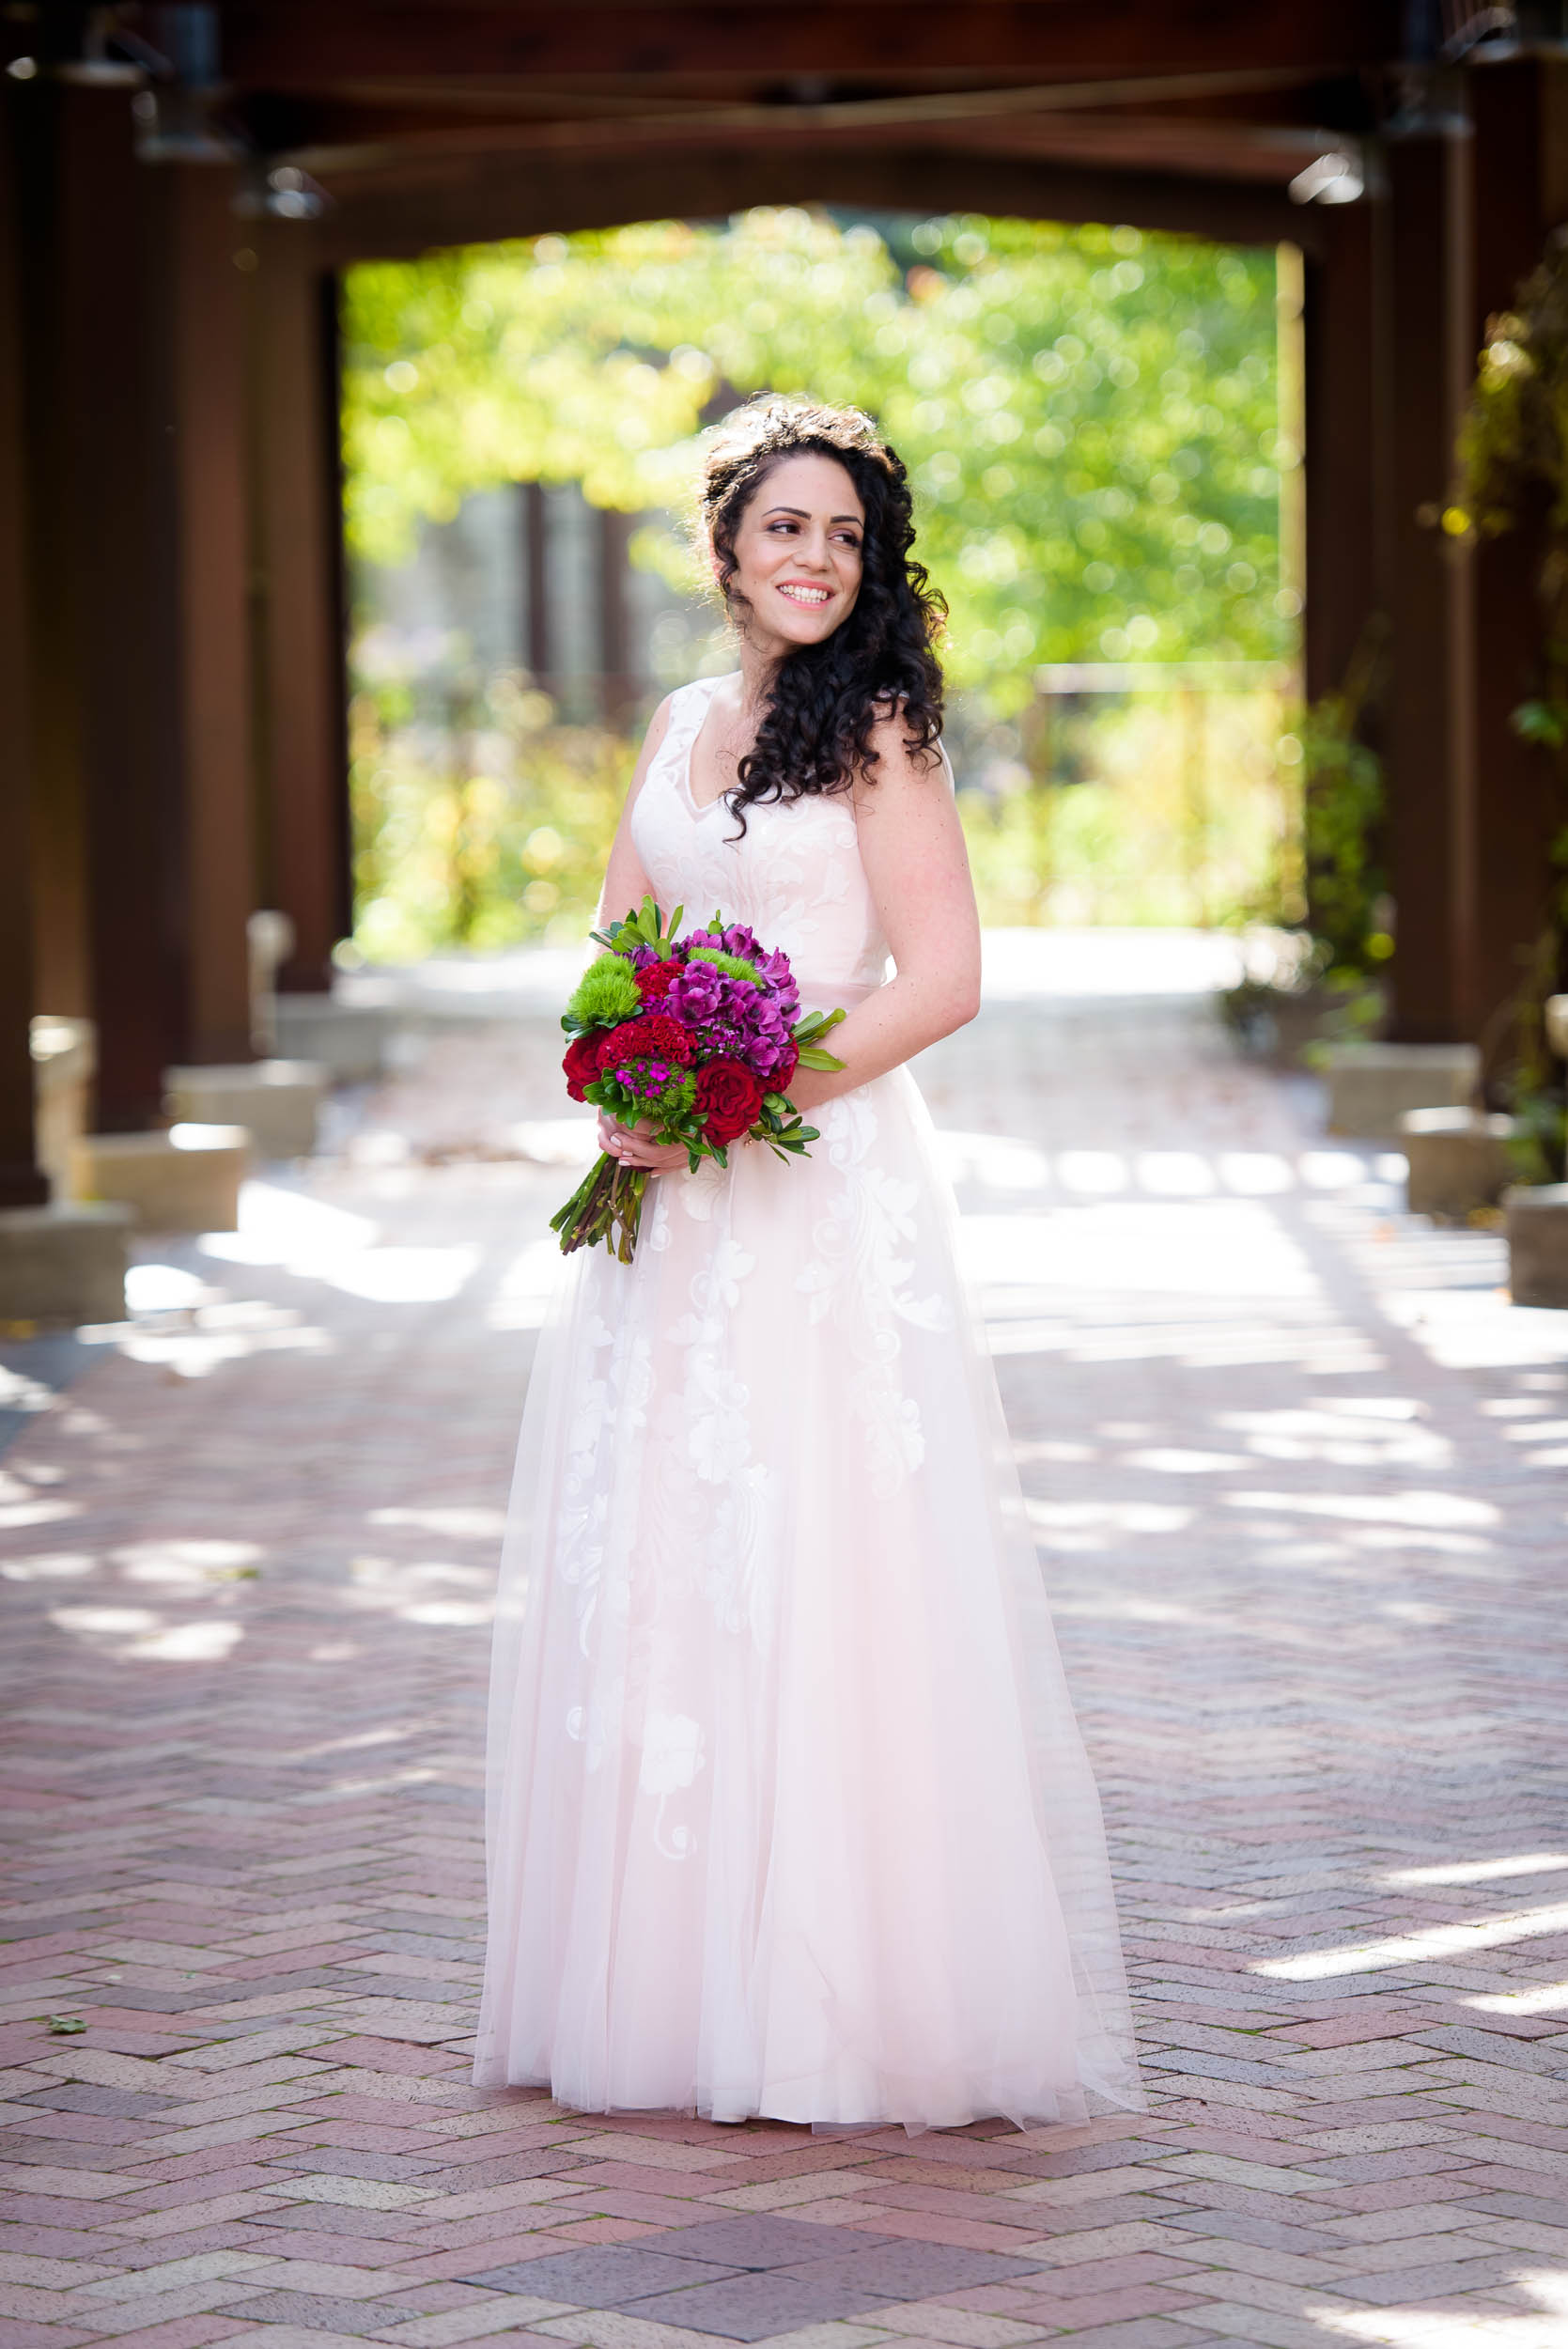 Bridal portrait during an Independence Grove Chicago wedding.